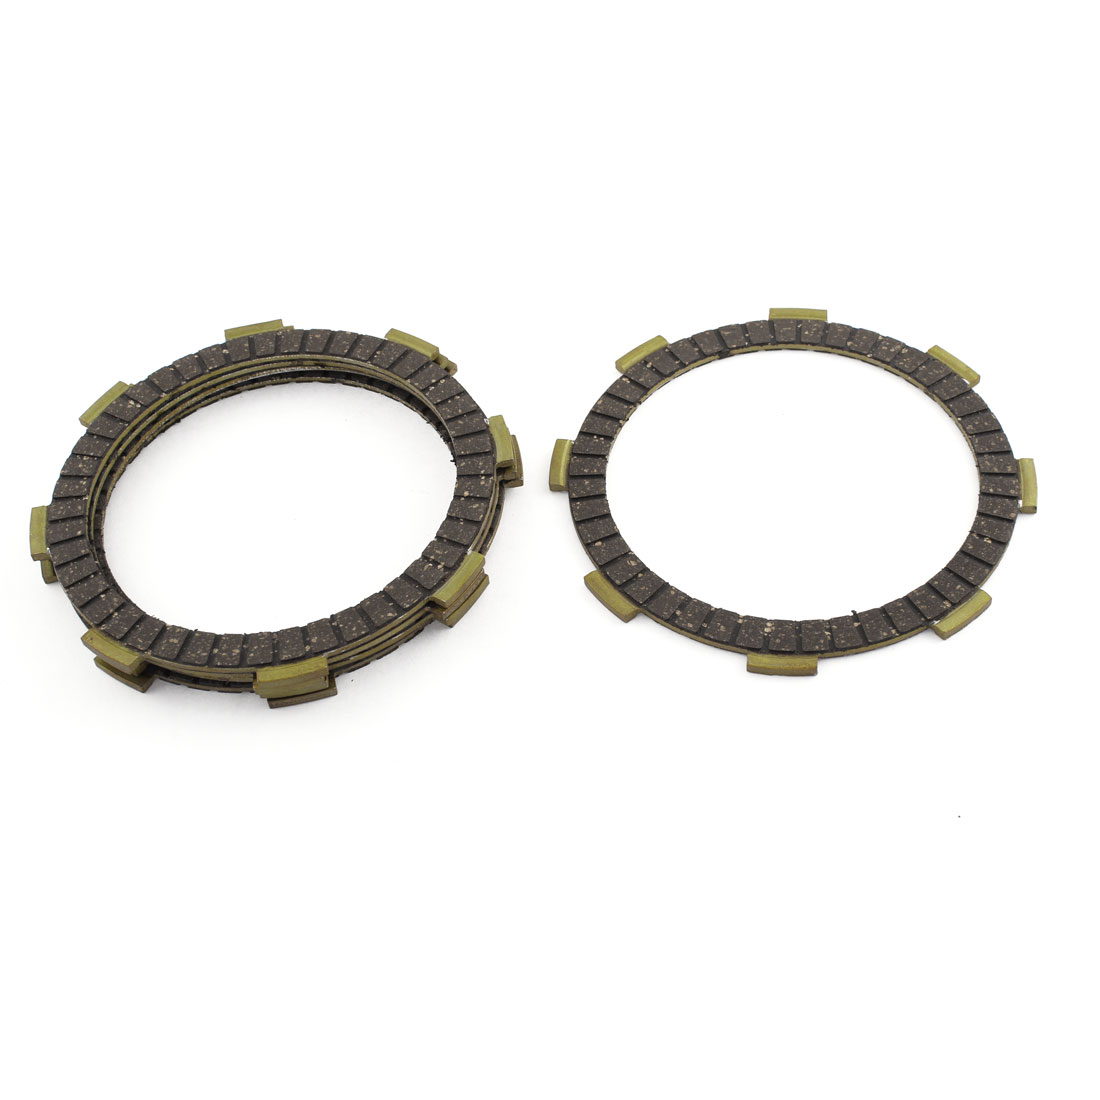 5 Pcs 91mm Inside Diameter Clutch Plate Replacing Parts for CG 125 150 200 Motorcycle